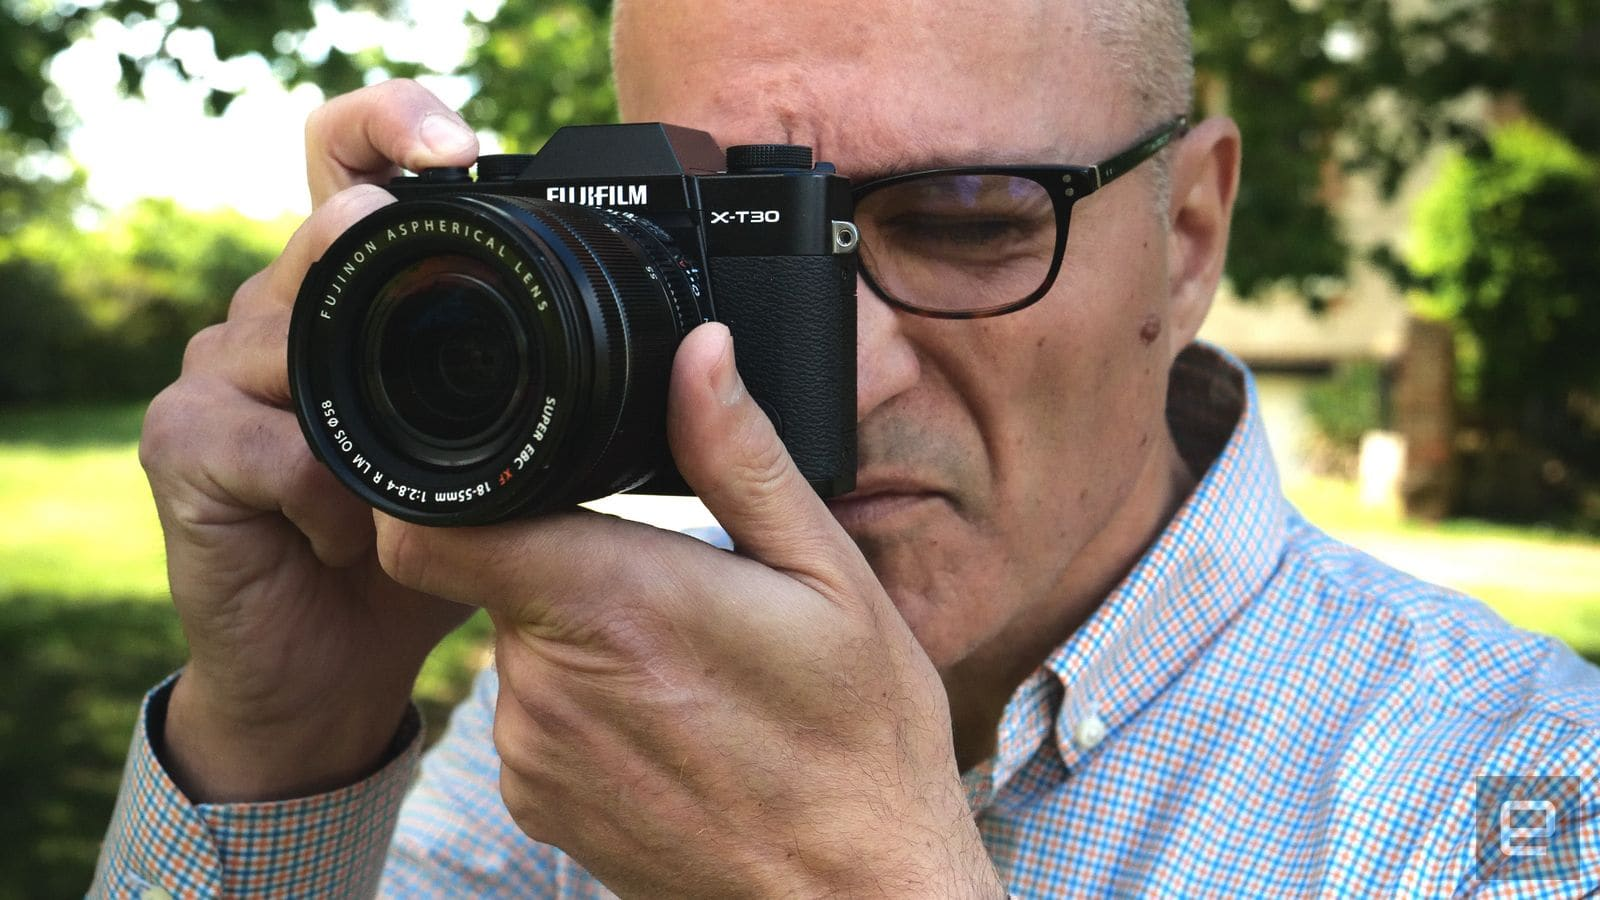 Fujifilm X-T30 review gallery